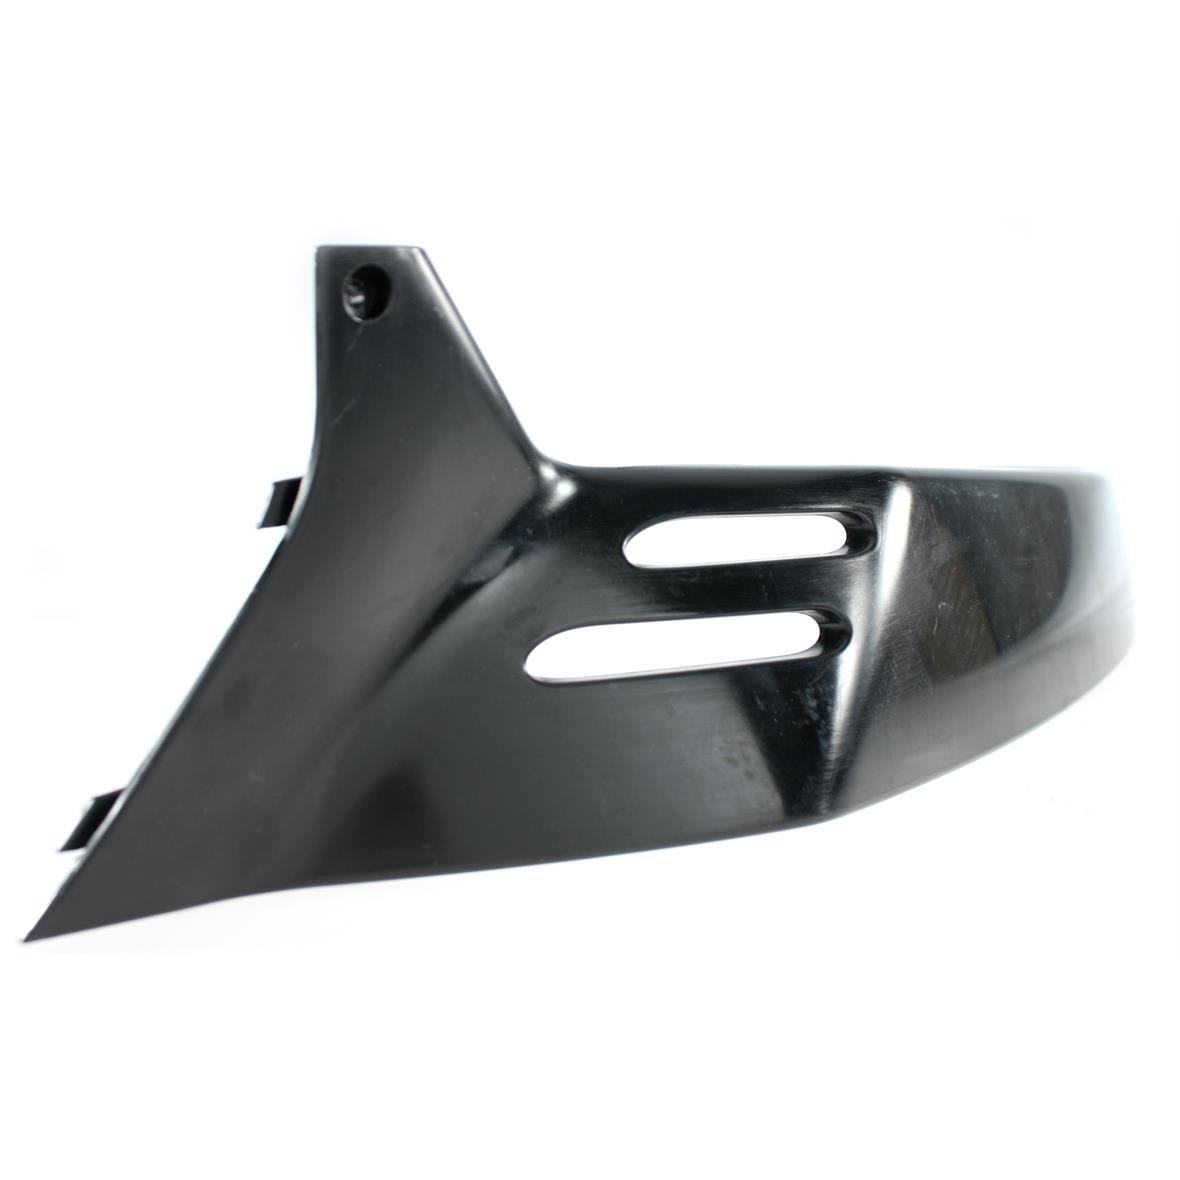 Product Image for 'Side Panel Trim PIAGGIO rightTitle'